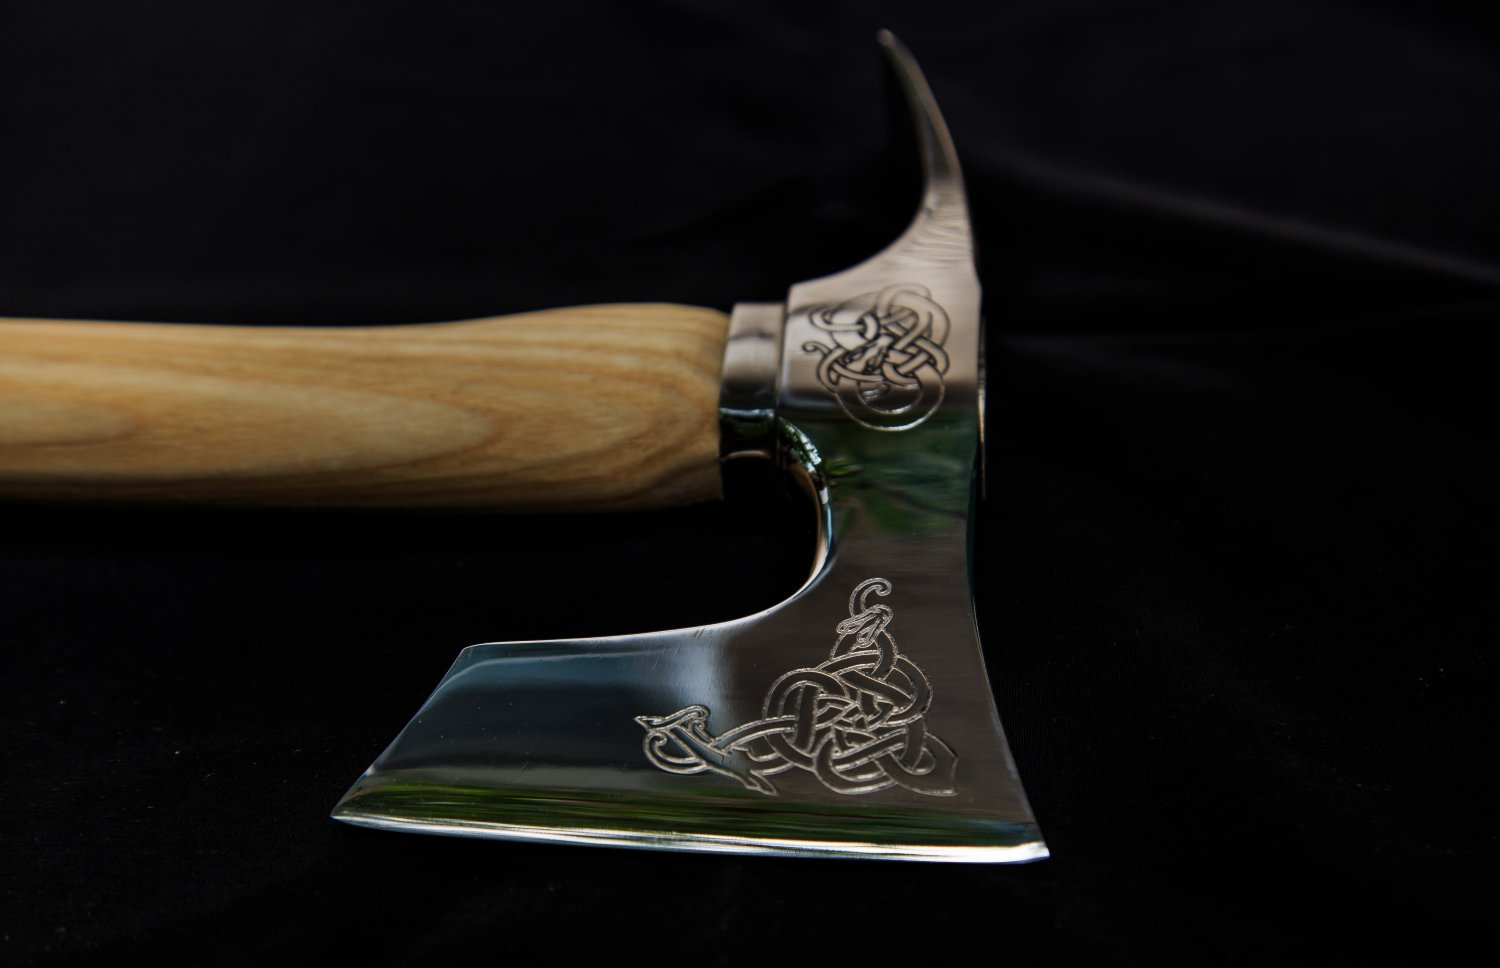 Stainless Steel Engraved Bearded Axe With Adze Blade